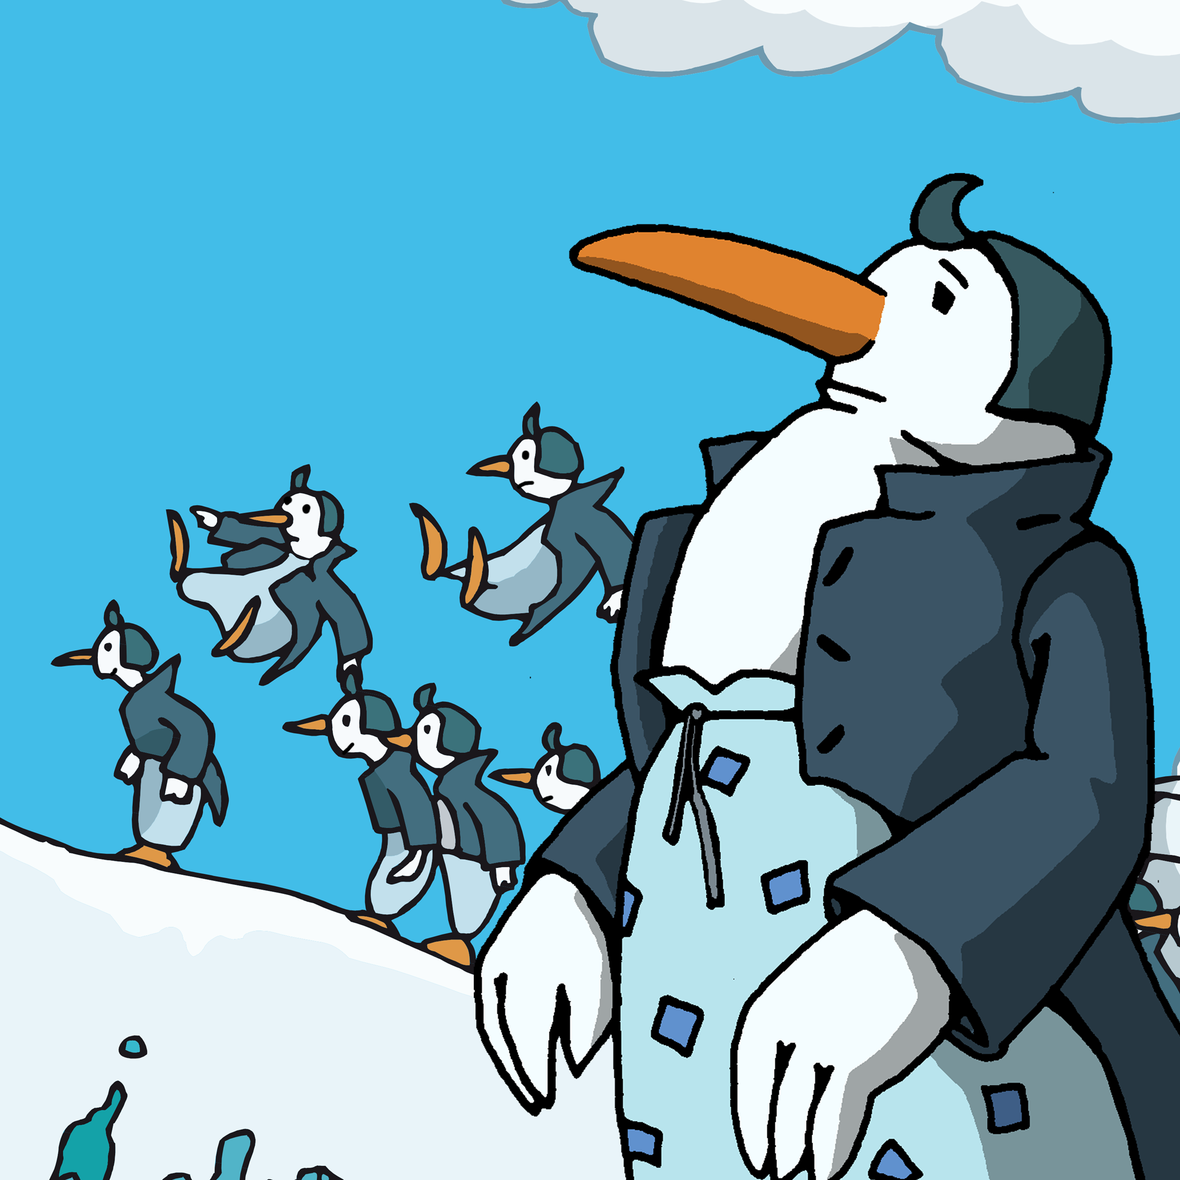 Illustration mit Pinguinen